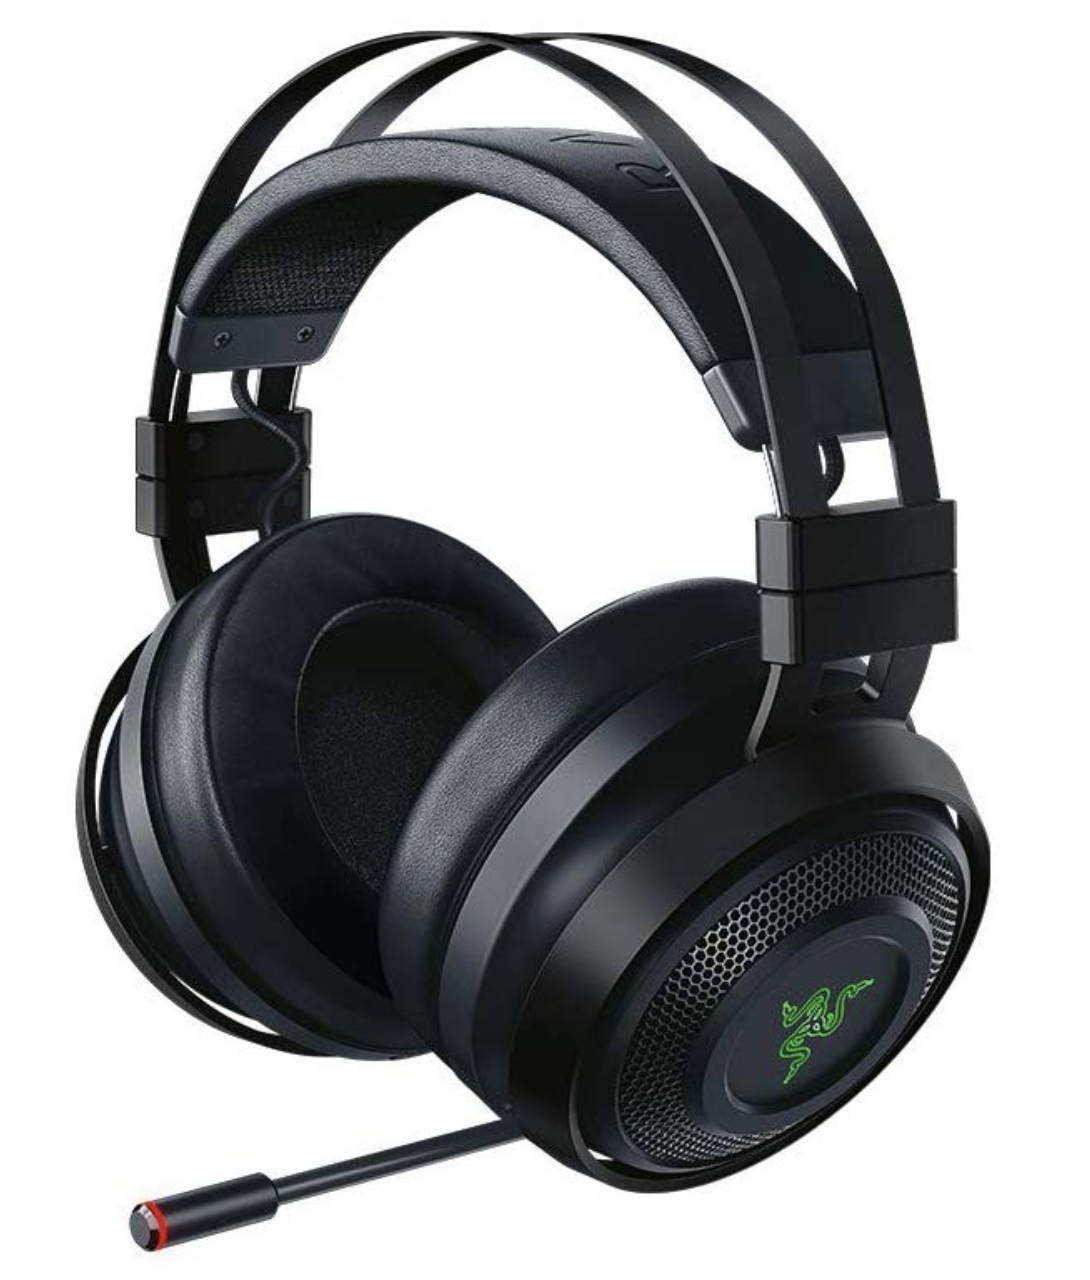 ps4 gaming headsets, razer black friday deals 2020